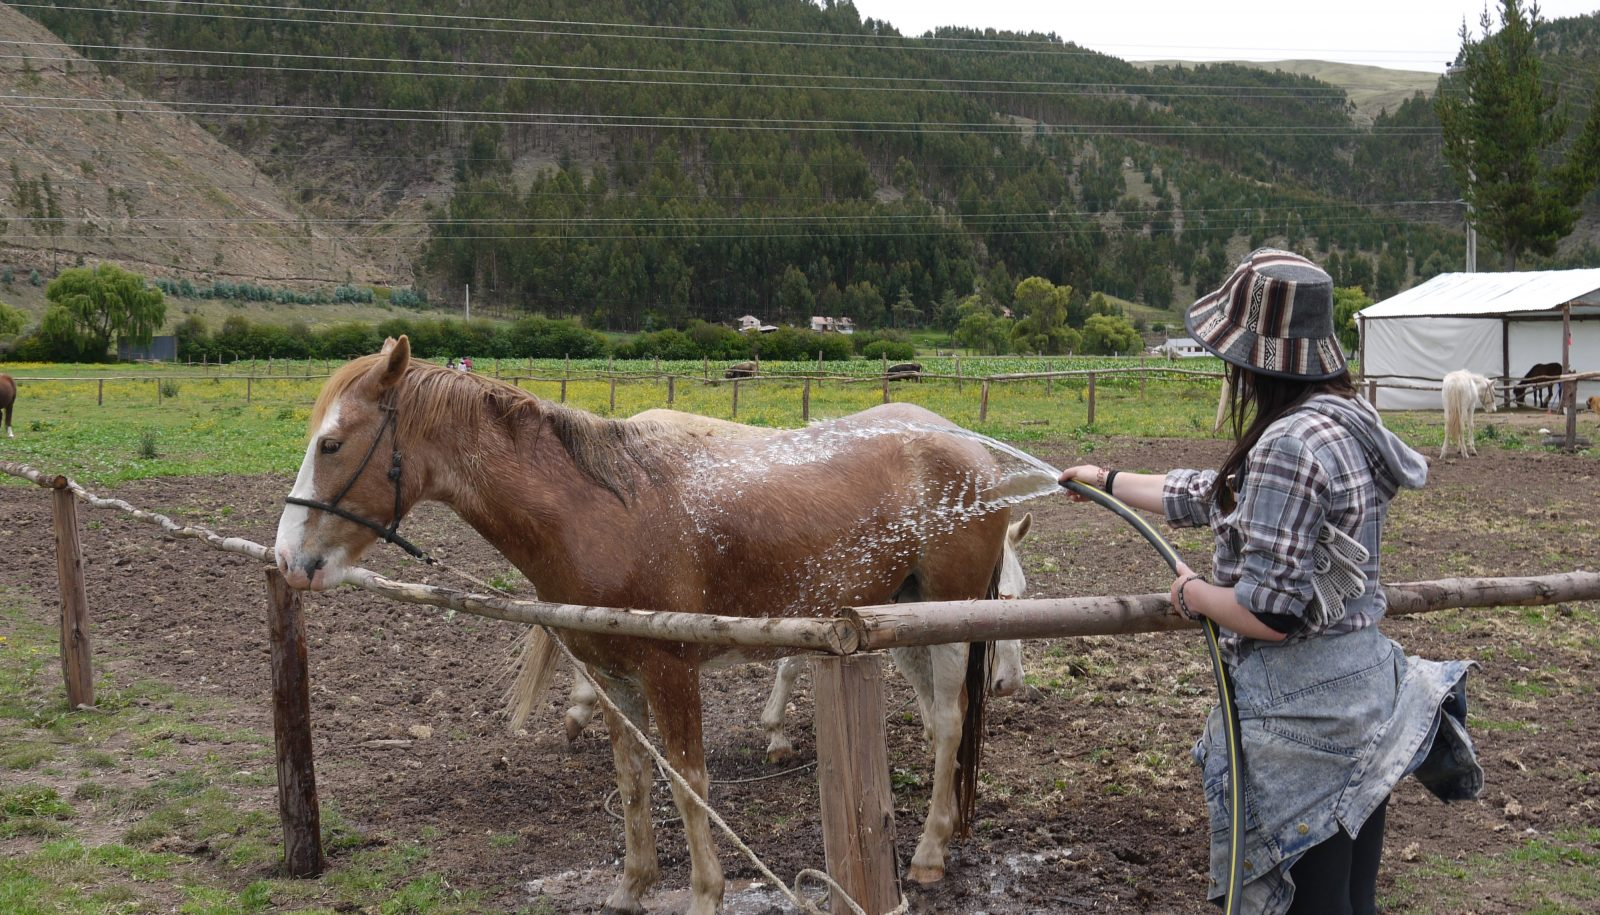 Volunteer washing Horses at Peru Horse Sanctuary